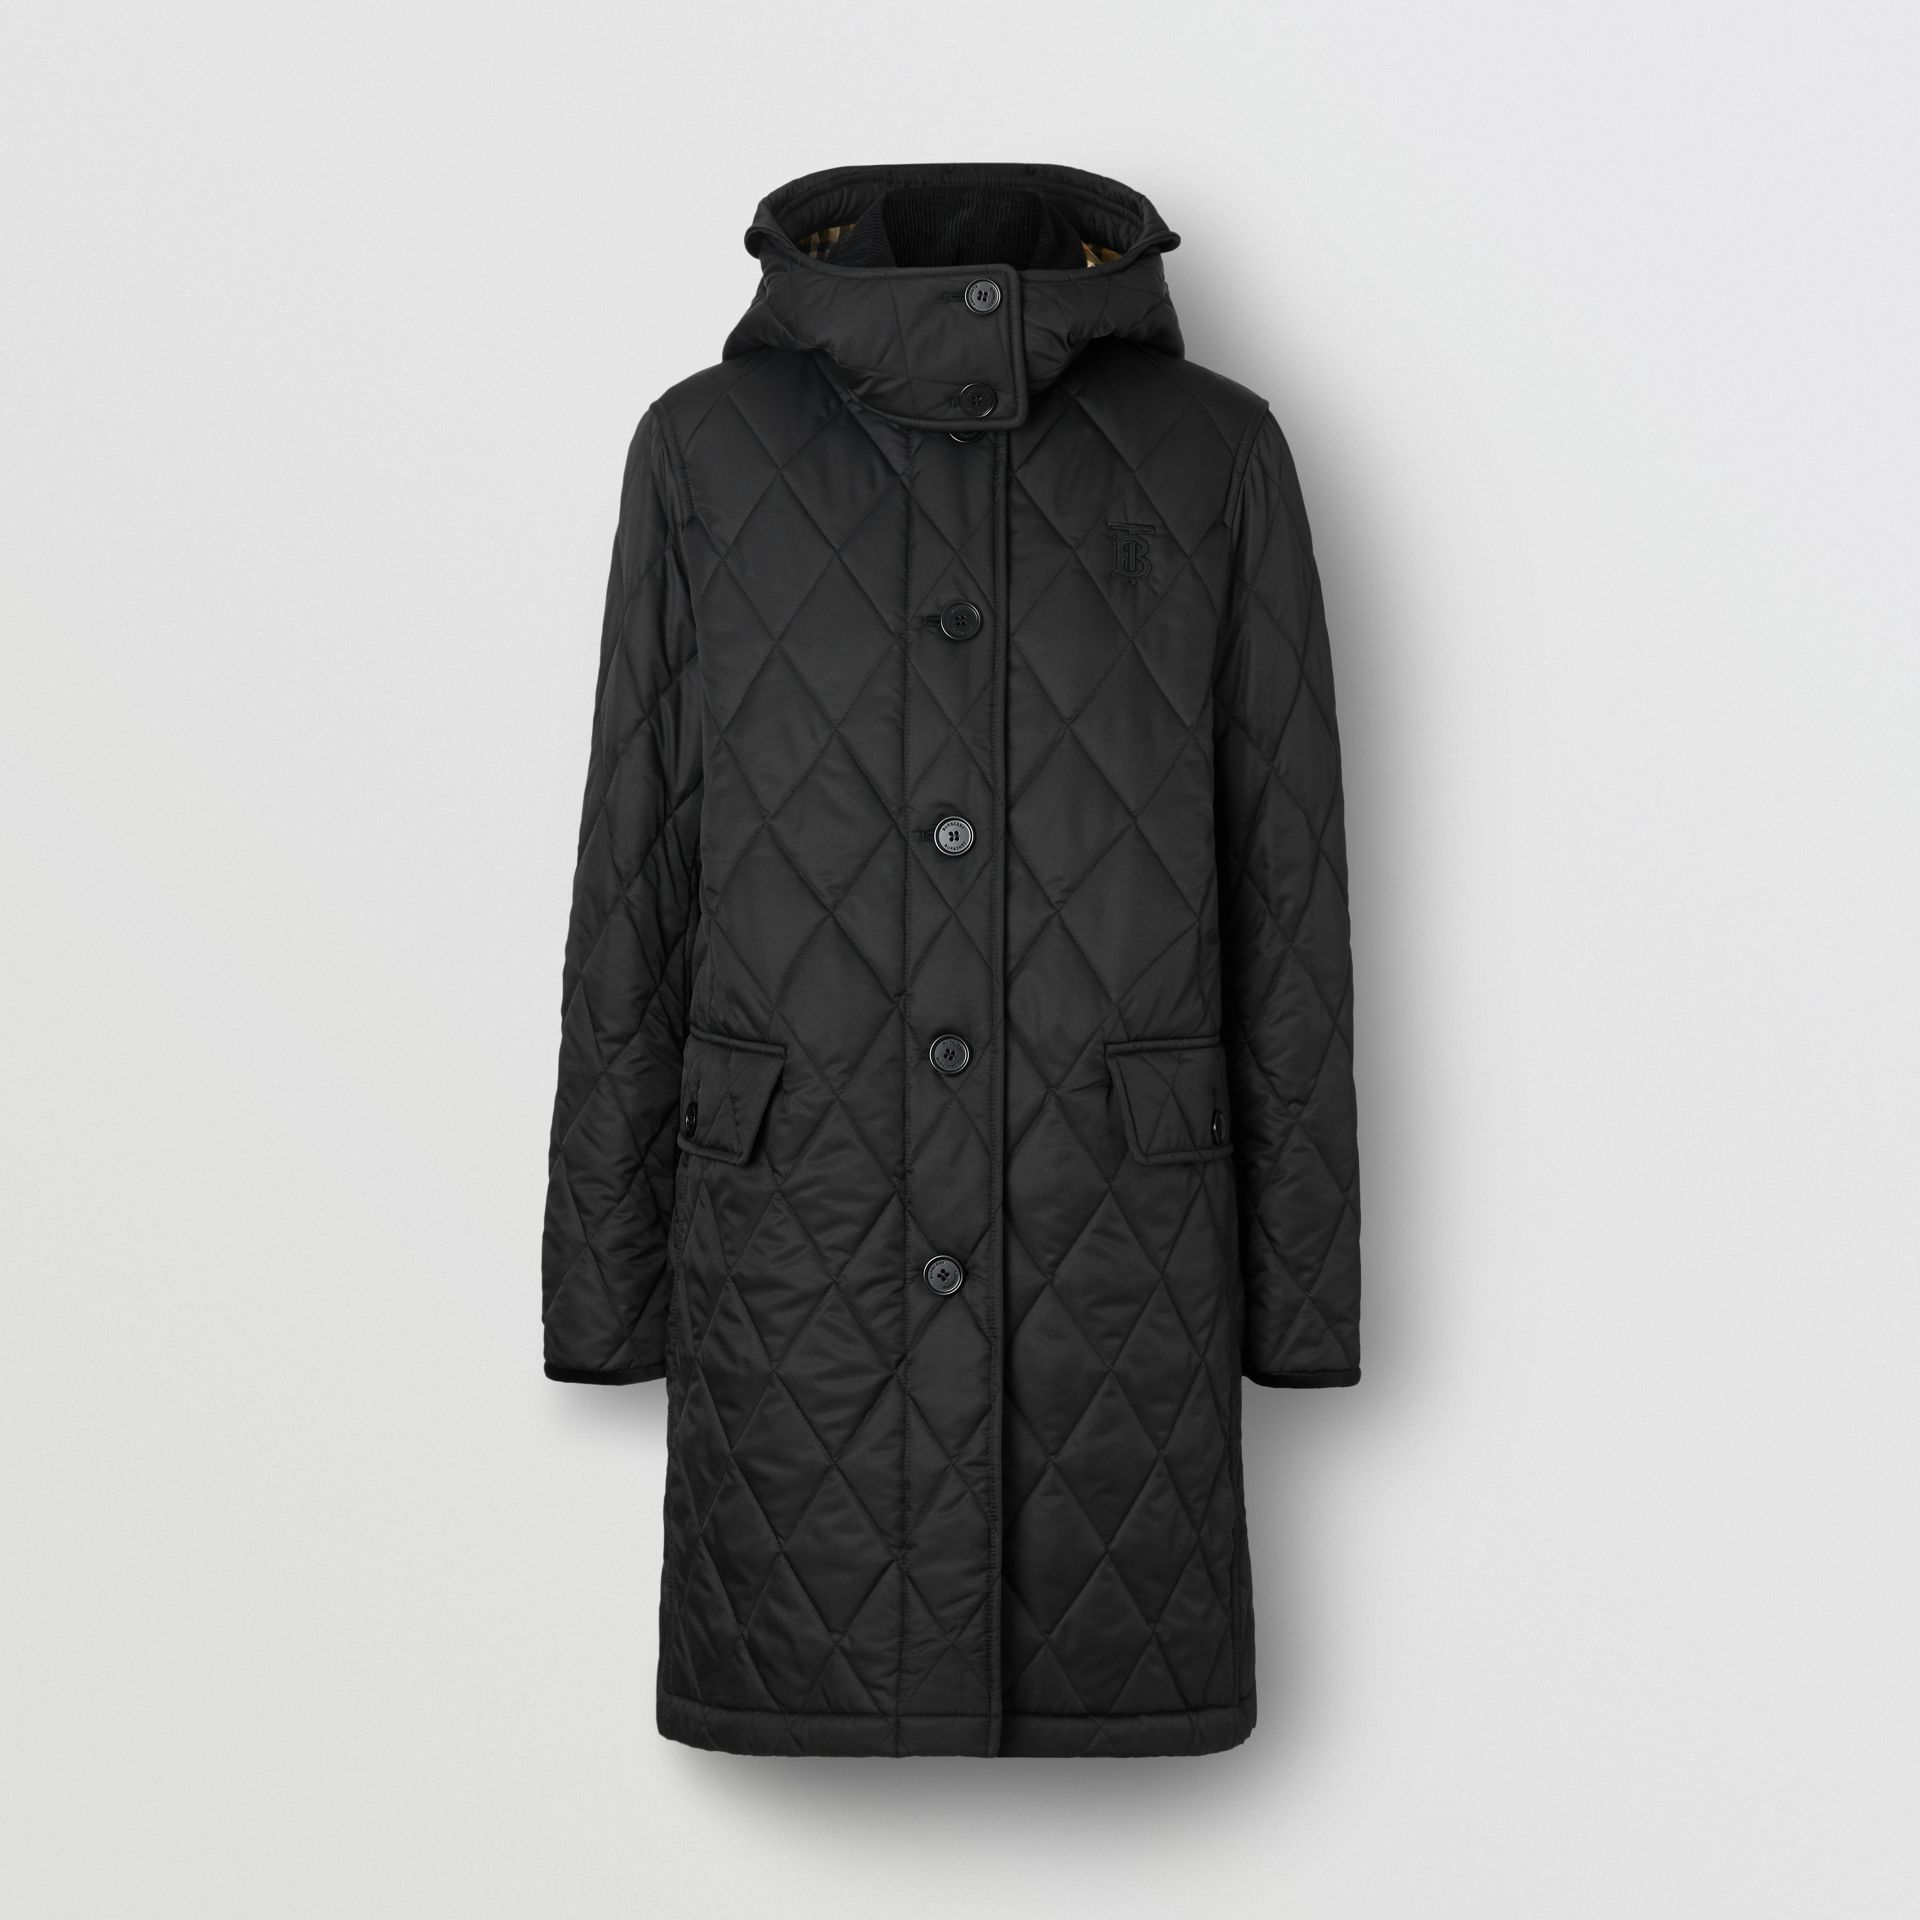 Detachable Hood Monogram Motif Quilted Coat in Black - Women | Burberry Singapore - gallery image 3